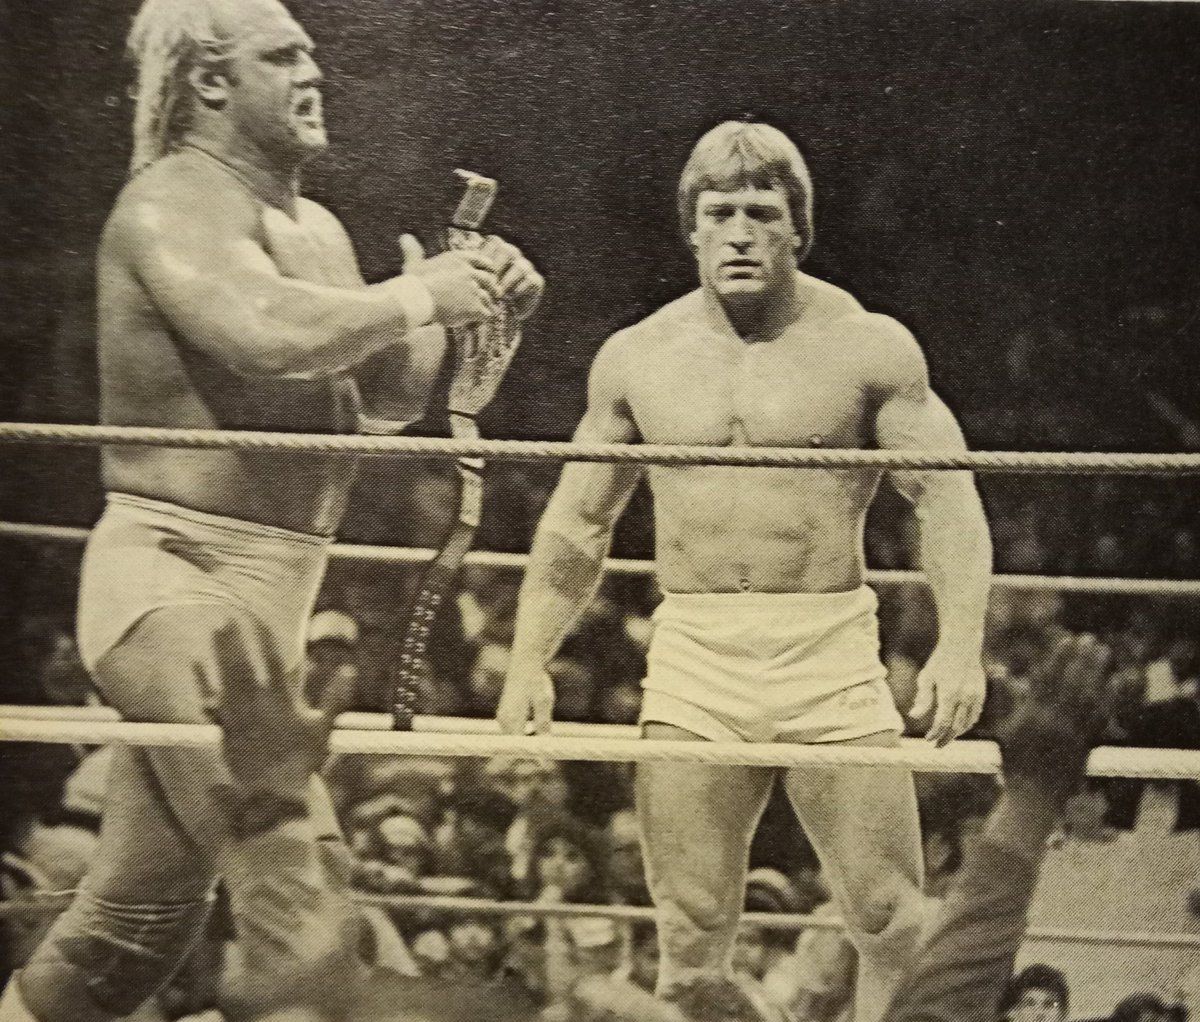 By this point in 1986,Mr.Wonderful was already fed up with Hulk Hogan's bullshit.when Paul Orndorff  finally did turn on The Hulkster,you saw it coming a mile away,but it was still all so well done and personally,I enjoyed the hell out of it!.👍😊